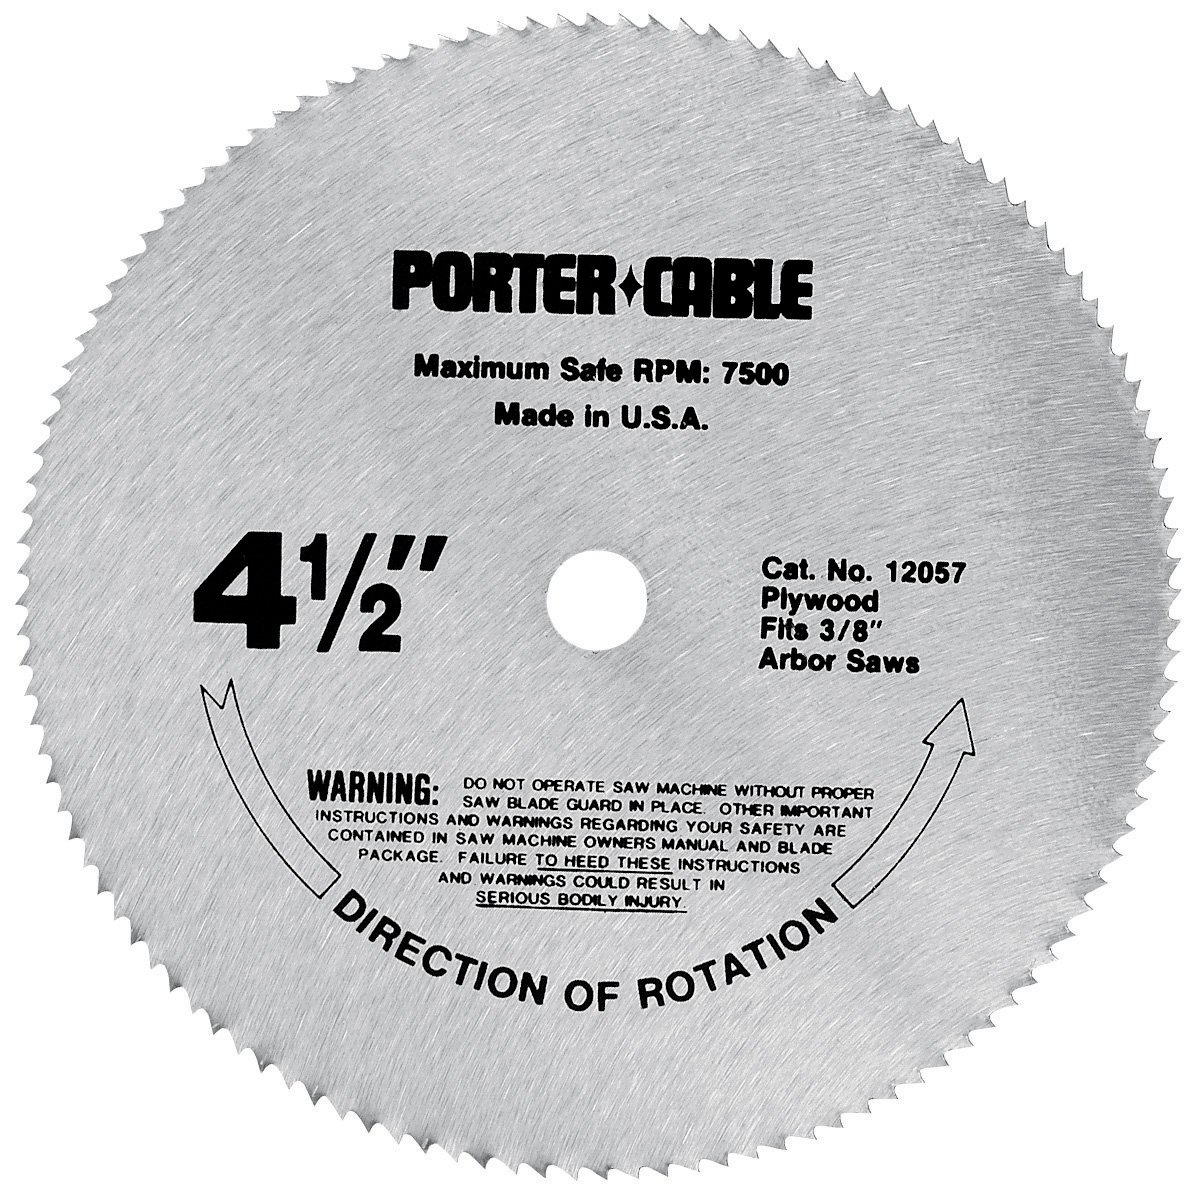 Porter cable 12057 4 12 inch 120 tooth tcg plywood cutting saw porter cable 12057 4 12 inch 120 tooth tcg plywood cutting saw blade with 38 inch arbor porter cable saw blades amazon greentooth Choice Image